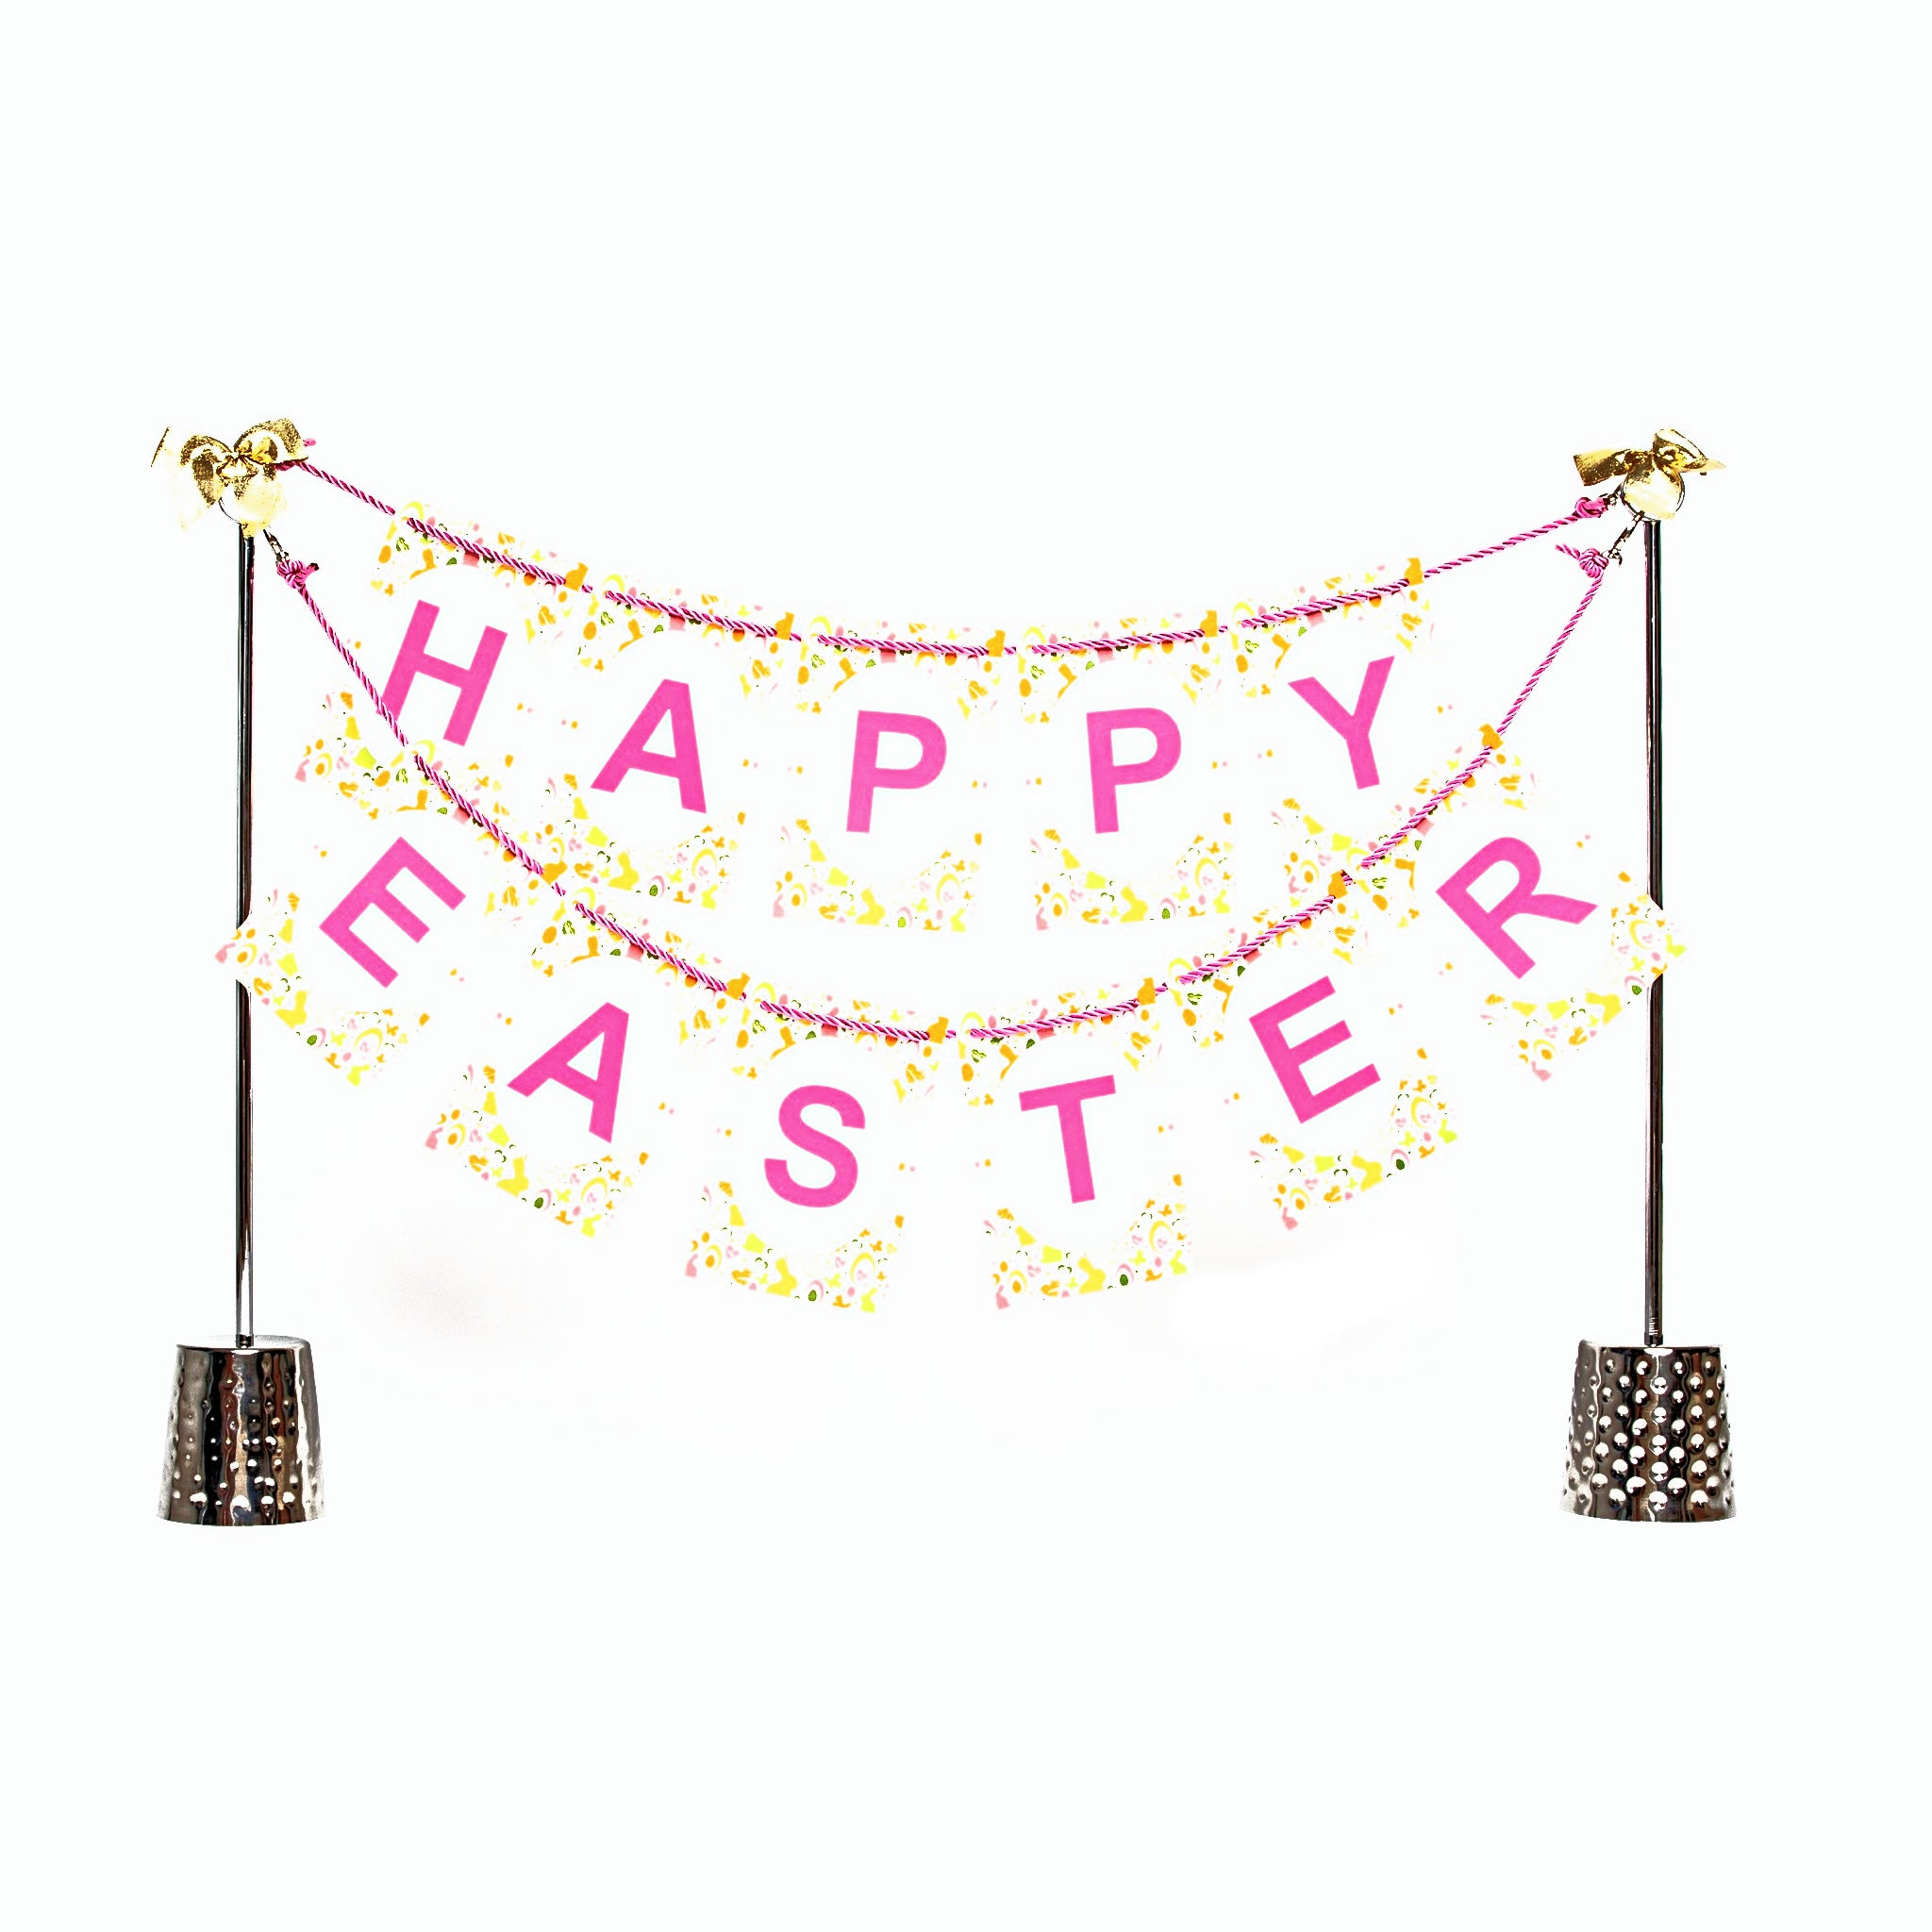 Happy Easter banner and Celebration Stand